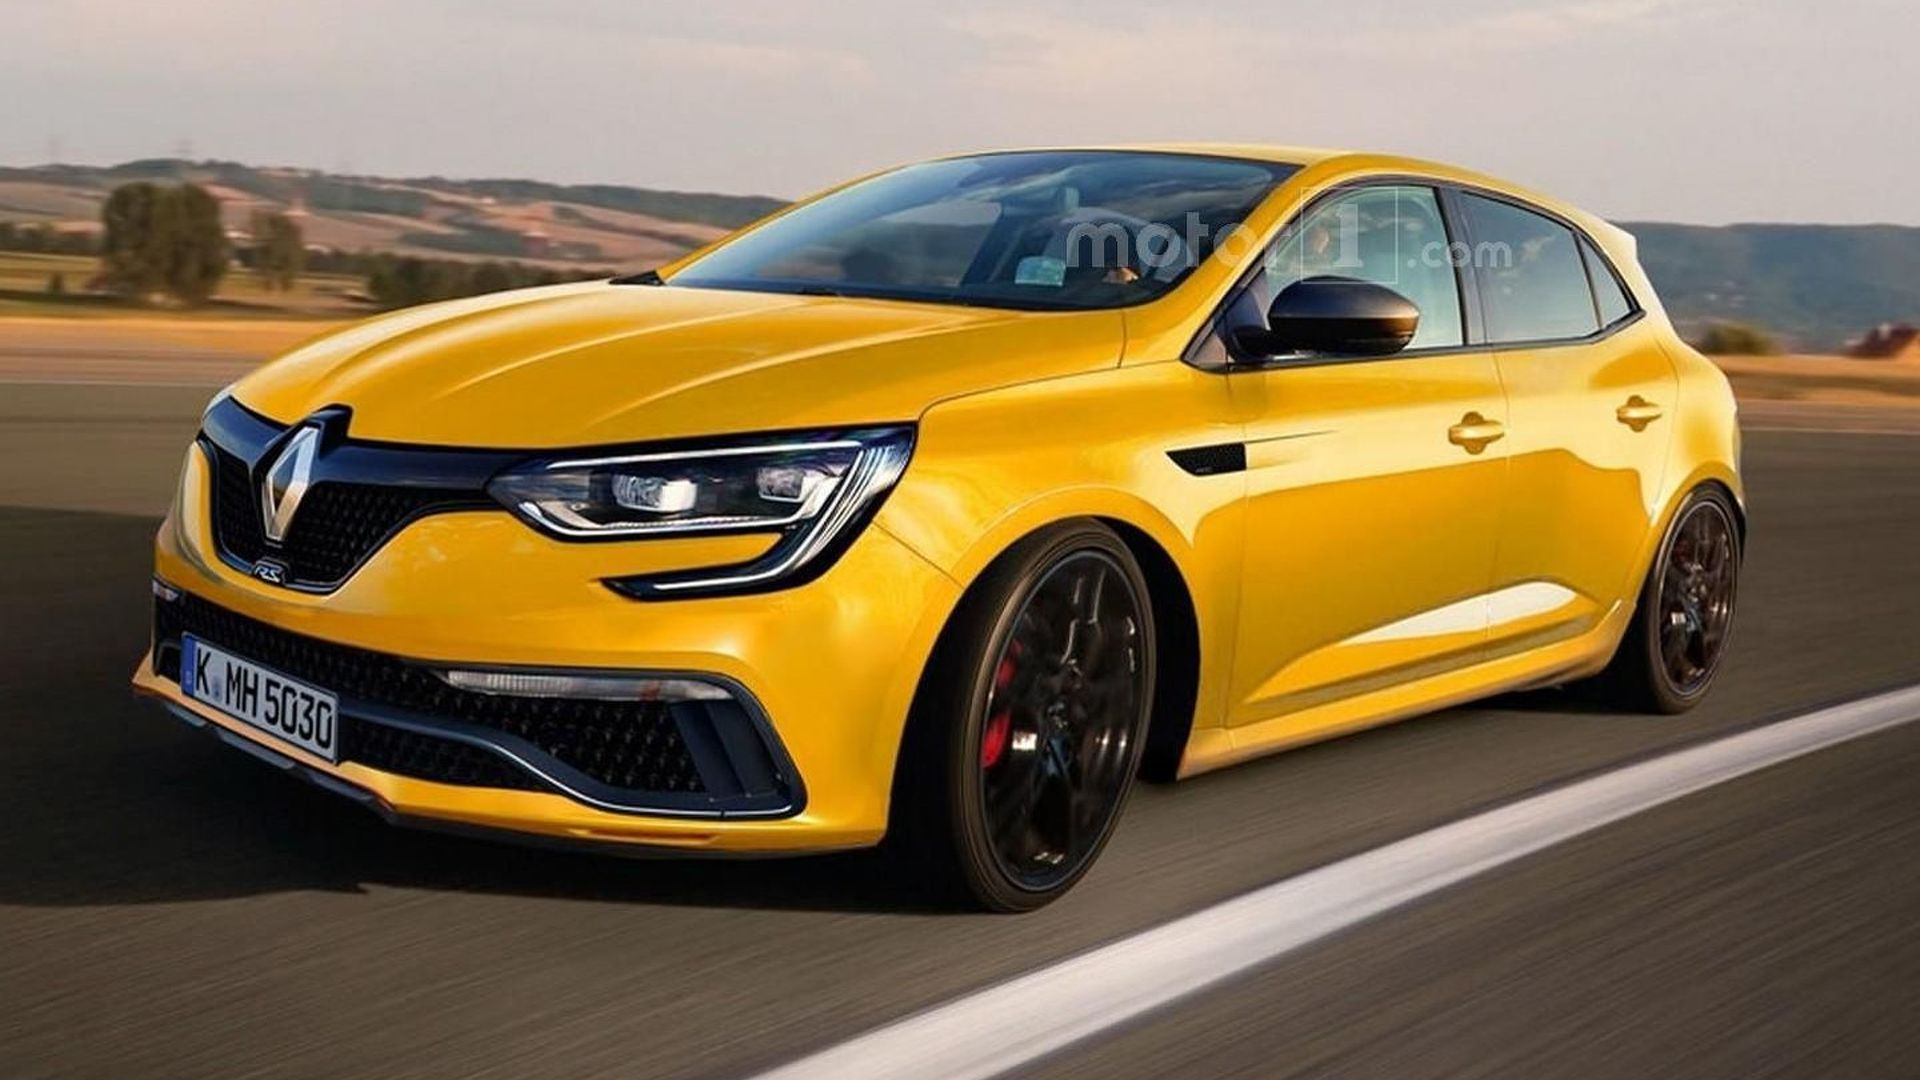 2018 renault megane rs to have 300 hp awd. Black Bedroom Furniture Sets. Home Design Ideas